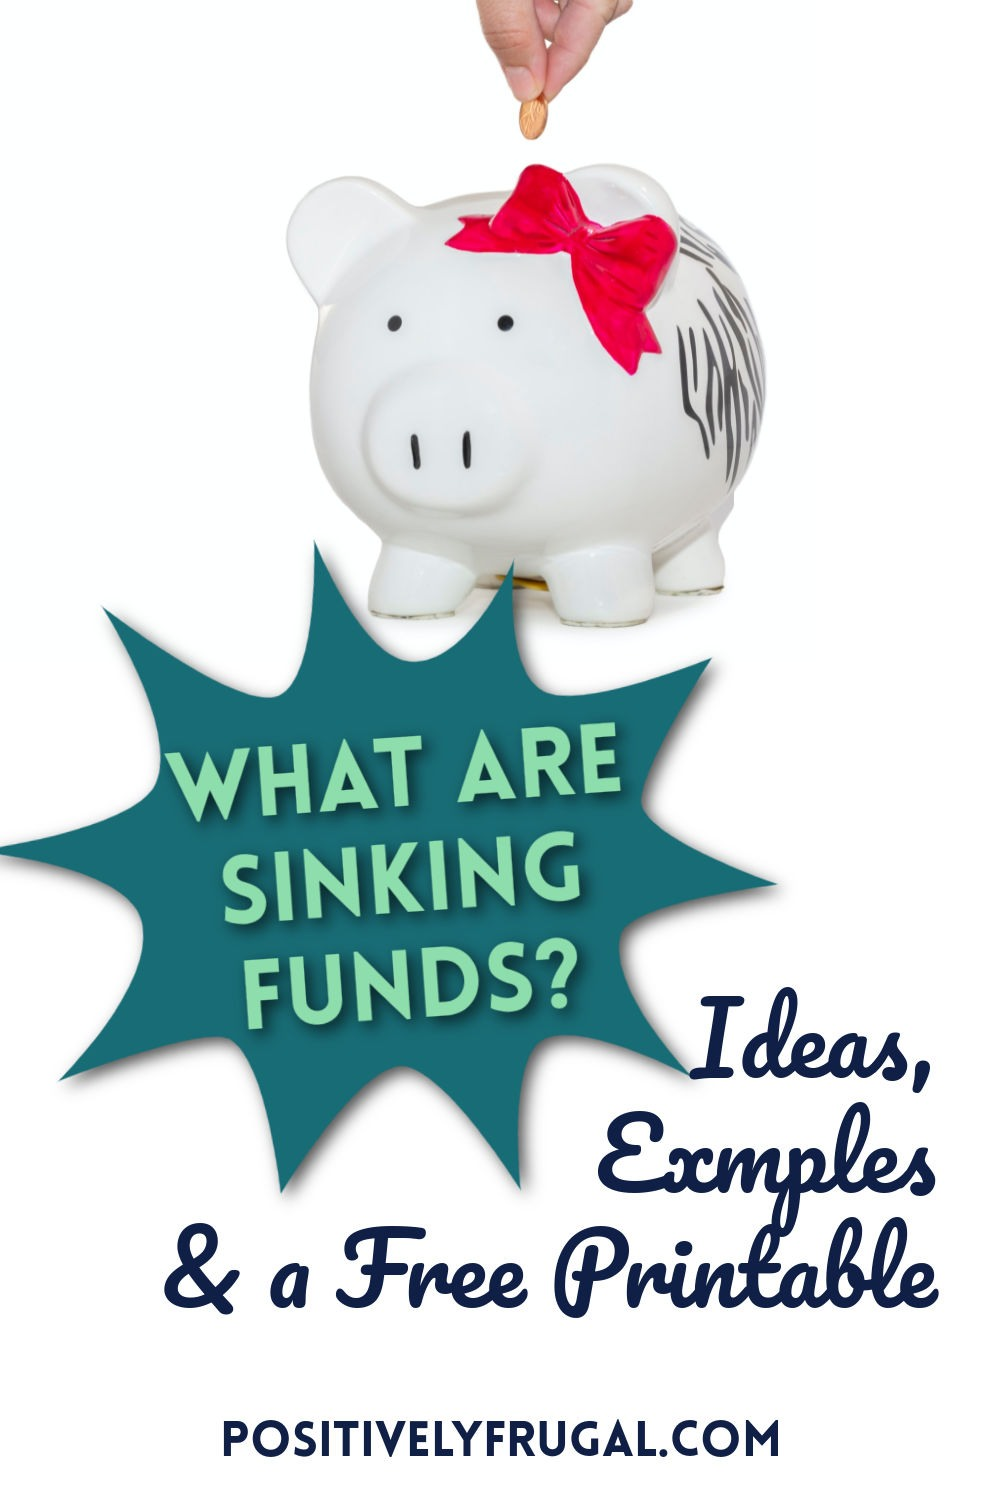 What are Sinking Funds Ideas Examples Free Printable by PositivelyFrugal.com